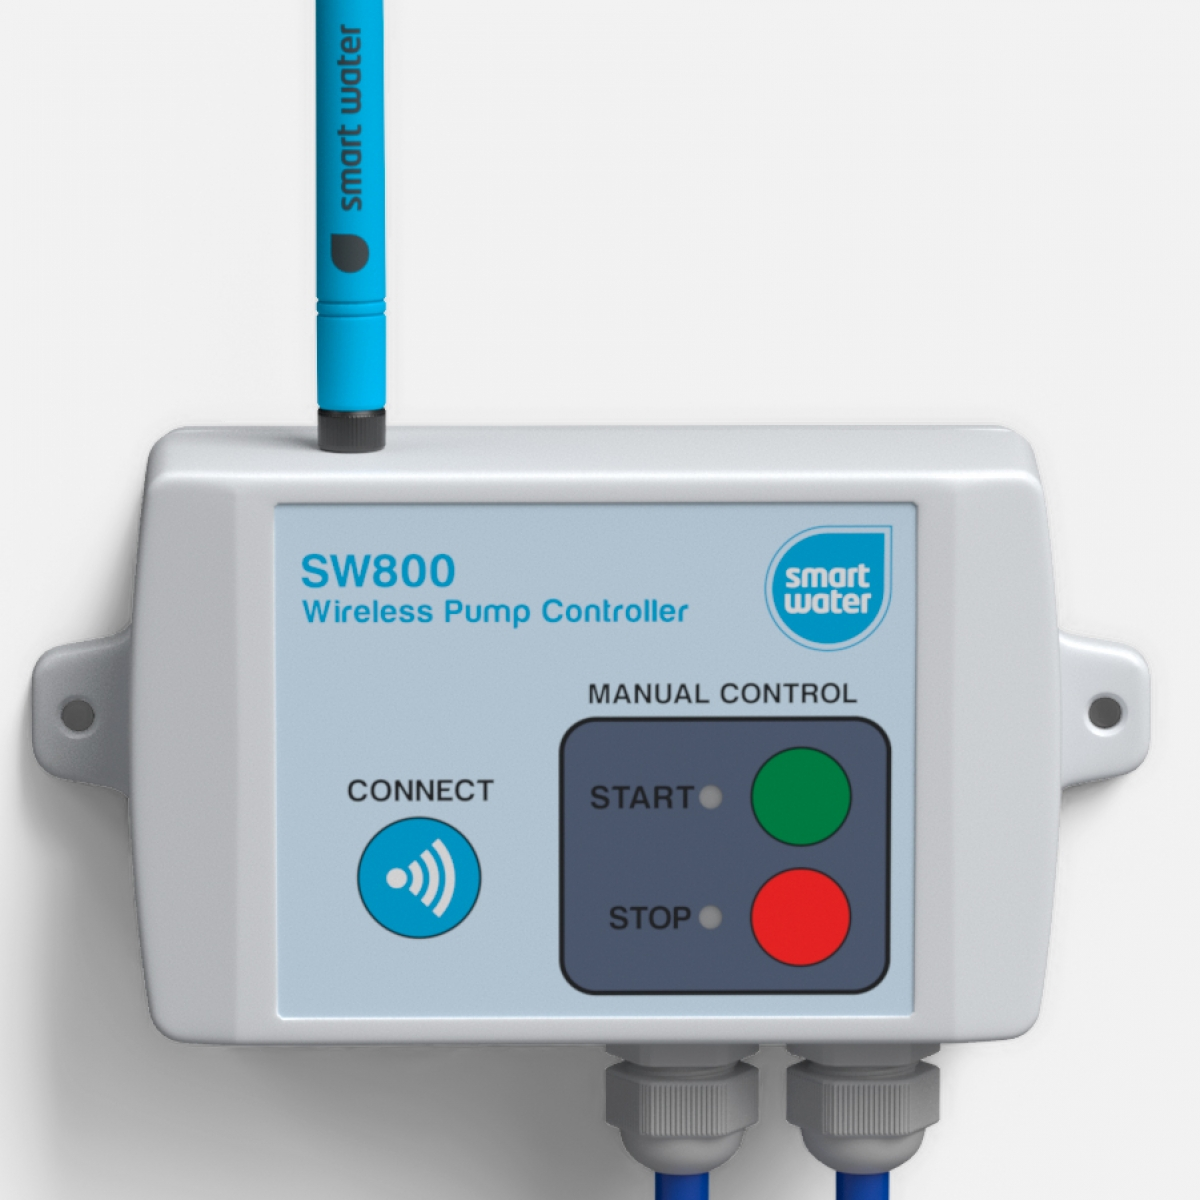 SW800 Wireless Pump Controller (12VDC) 2